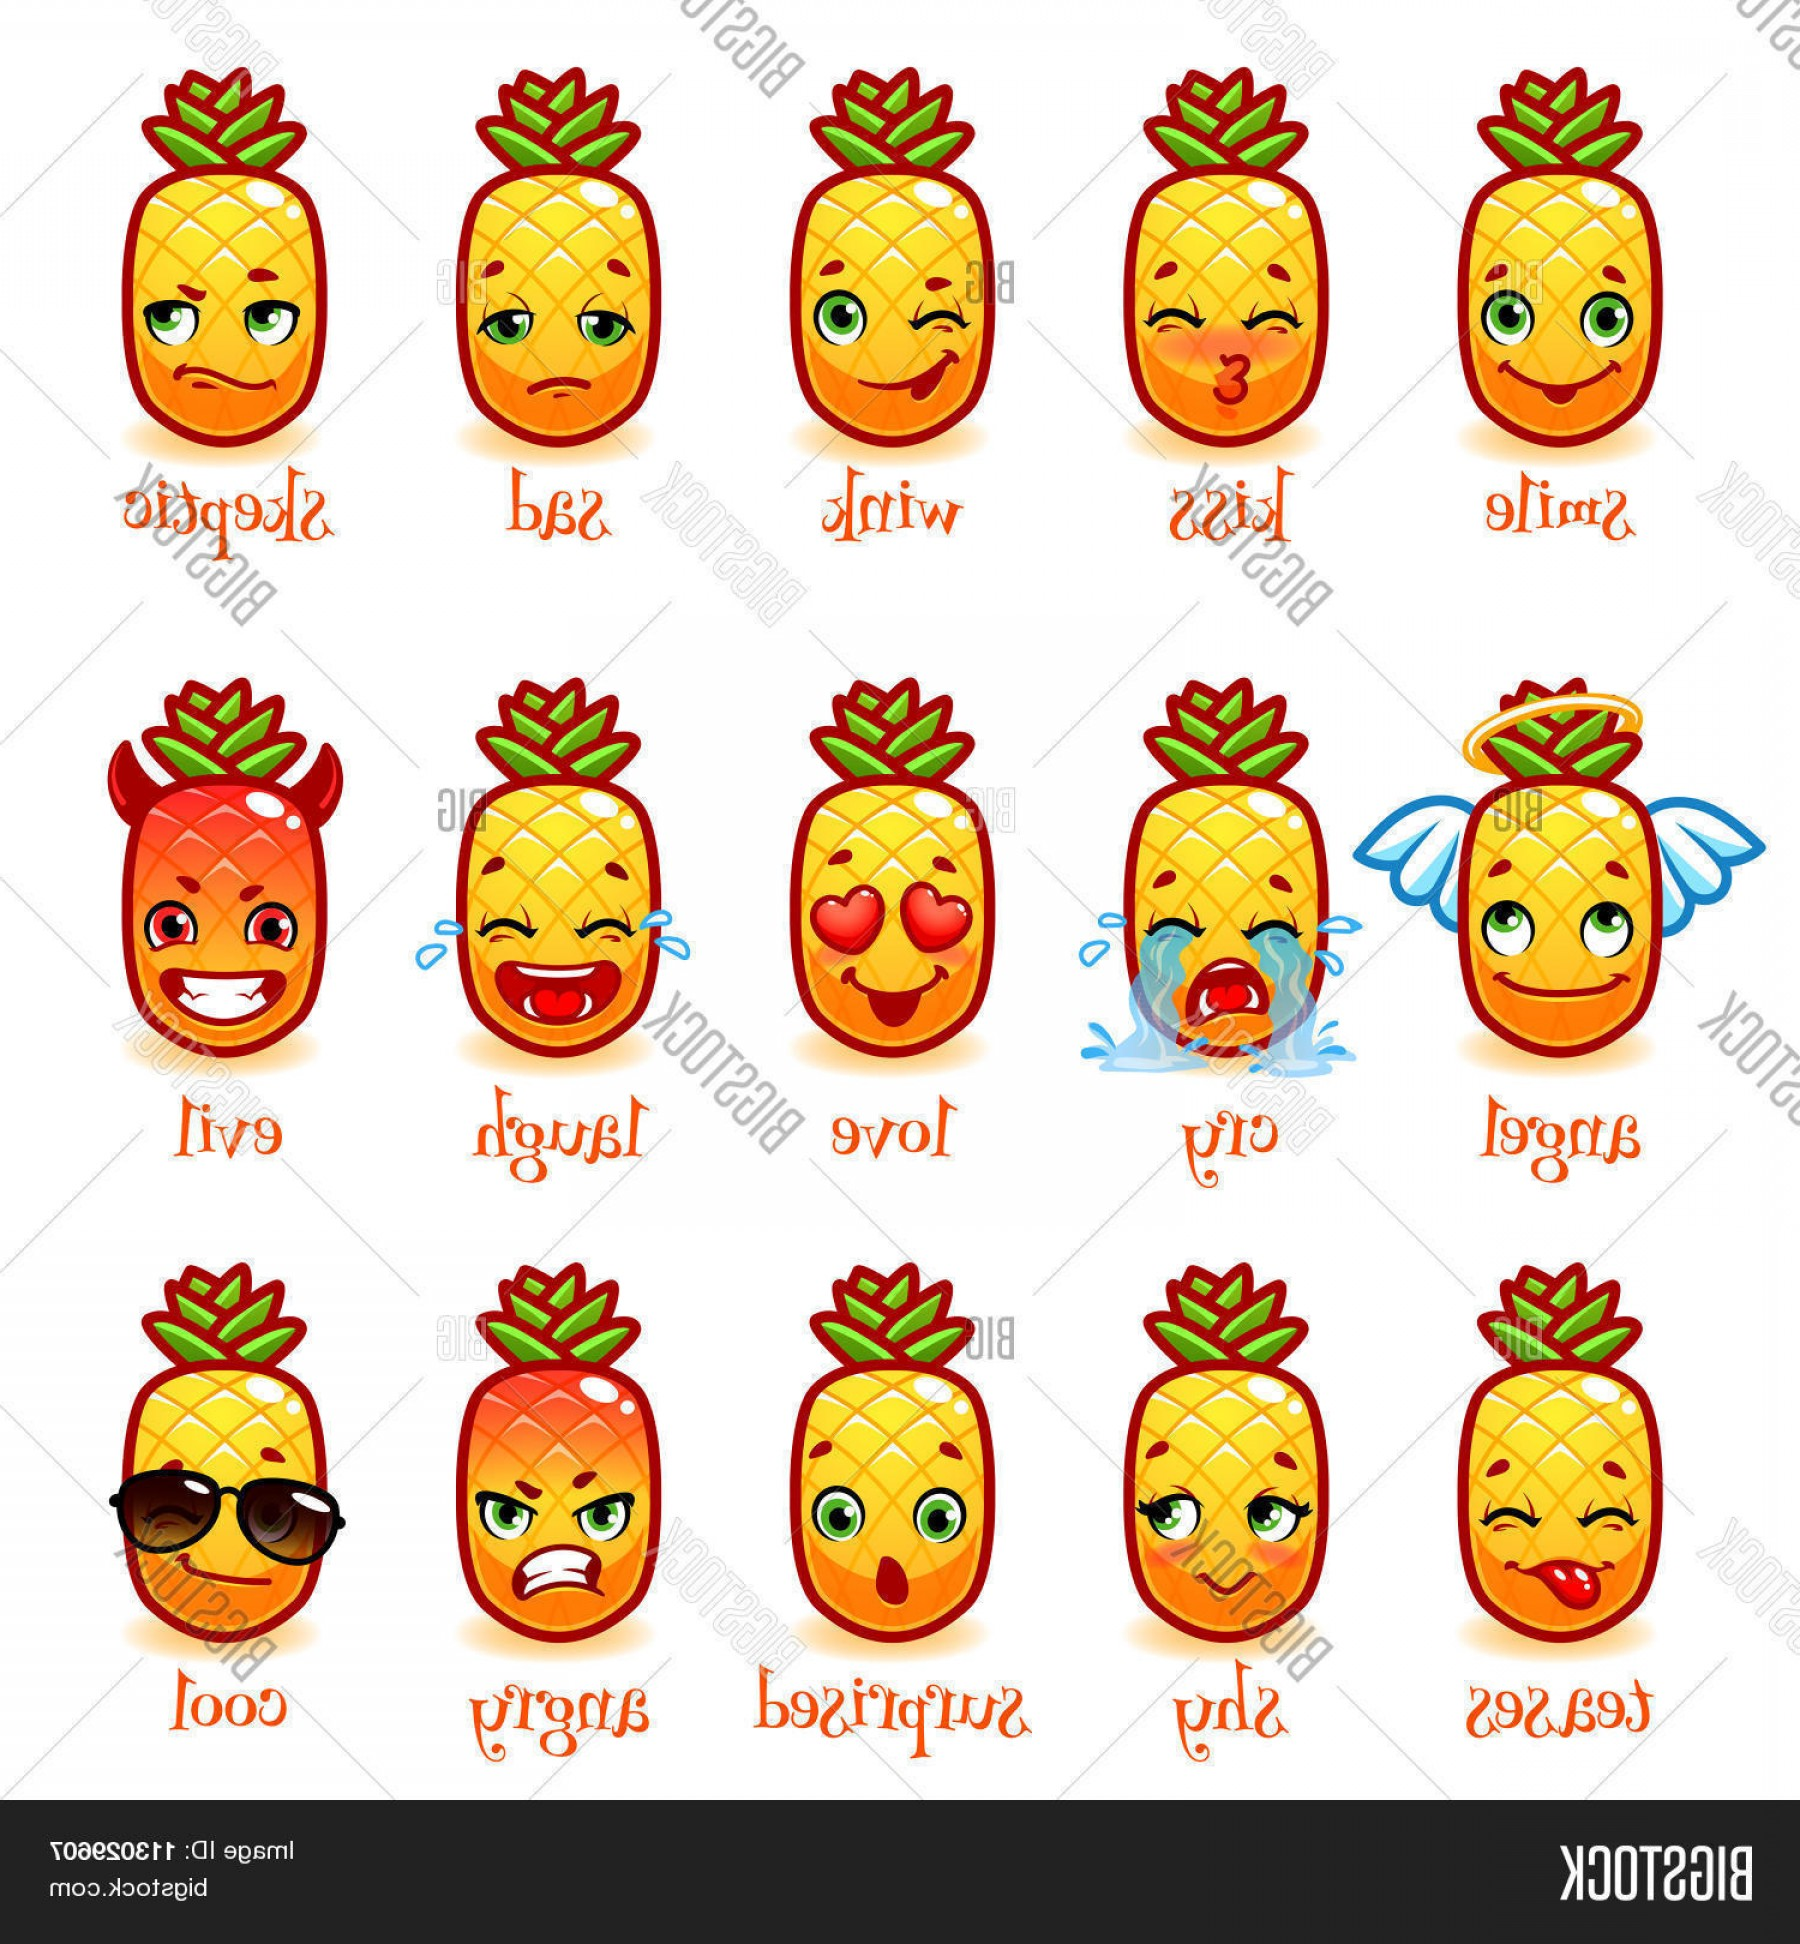 Cool Evil Vectors: Stock Vector Set Of Emoticons Funny Pineapple